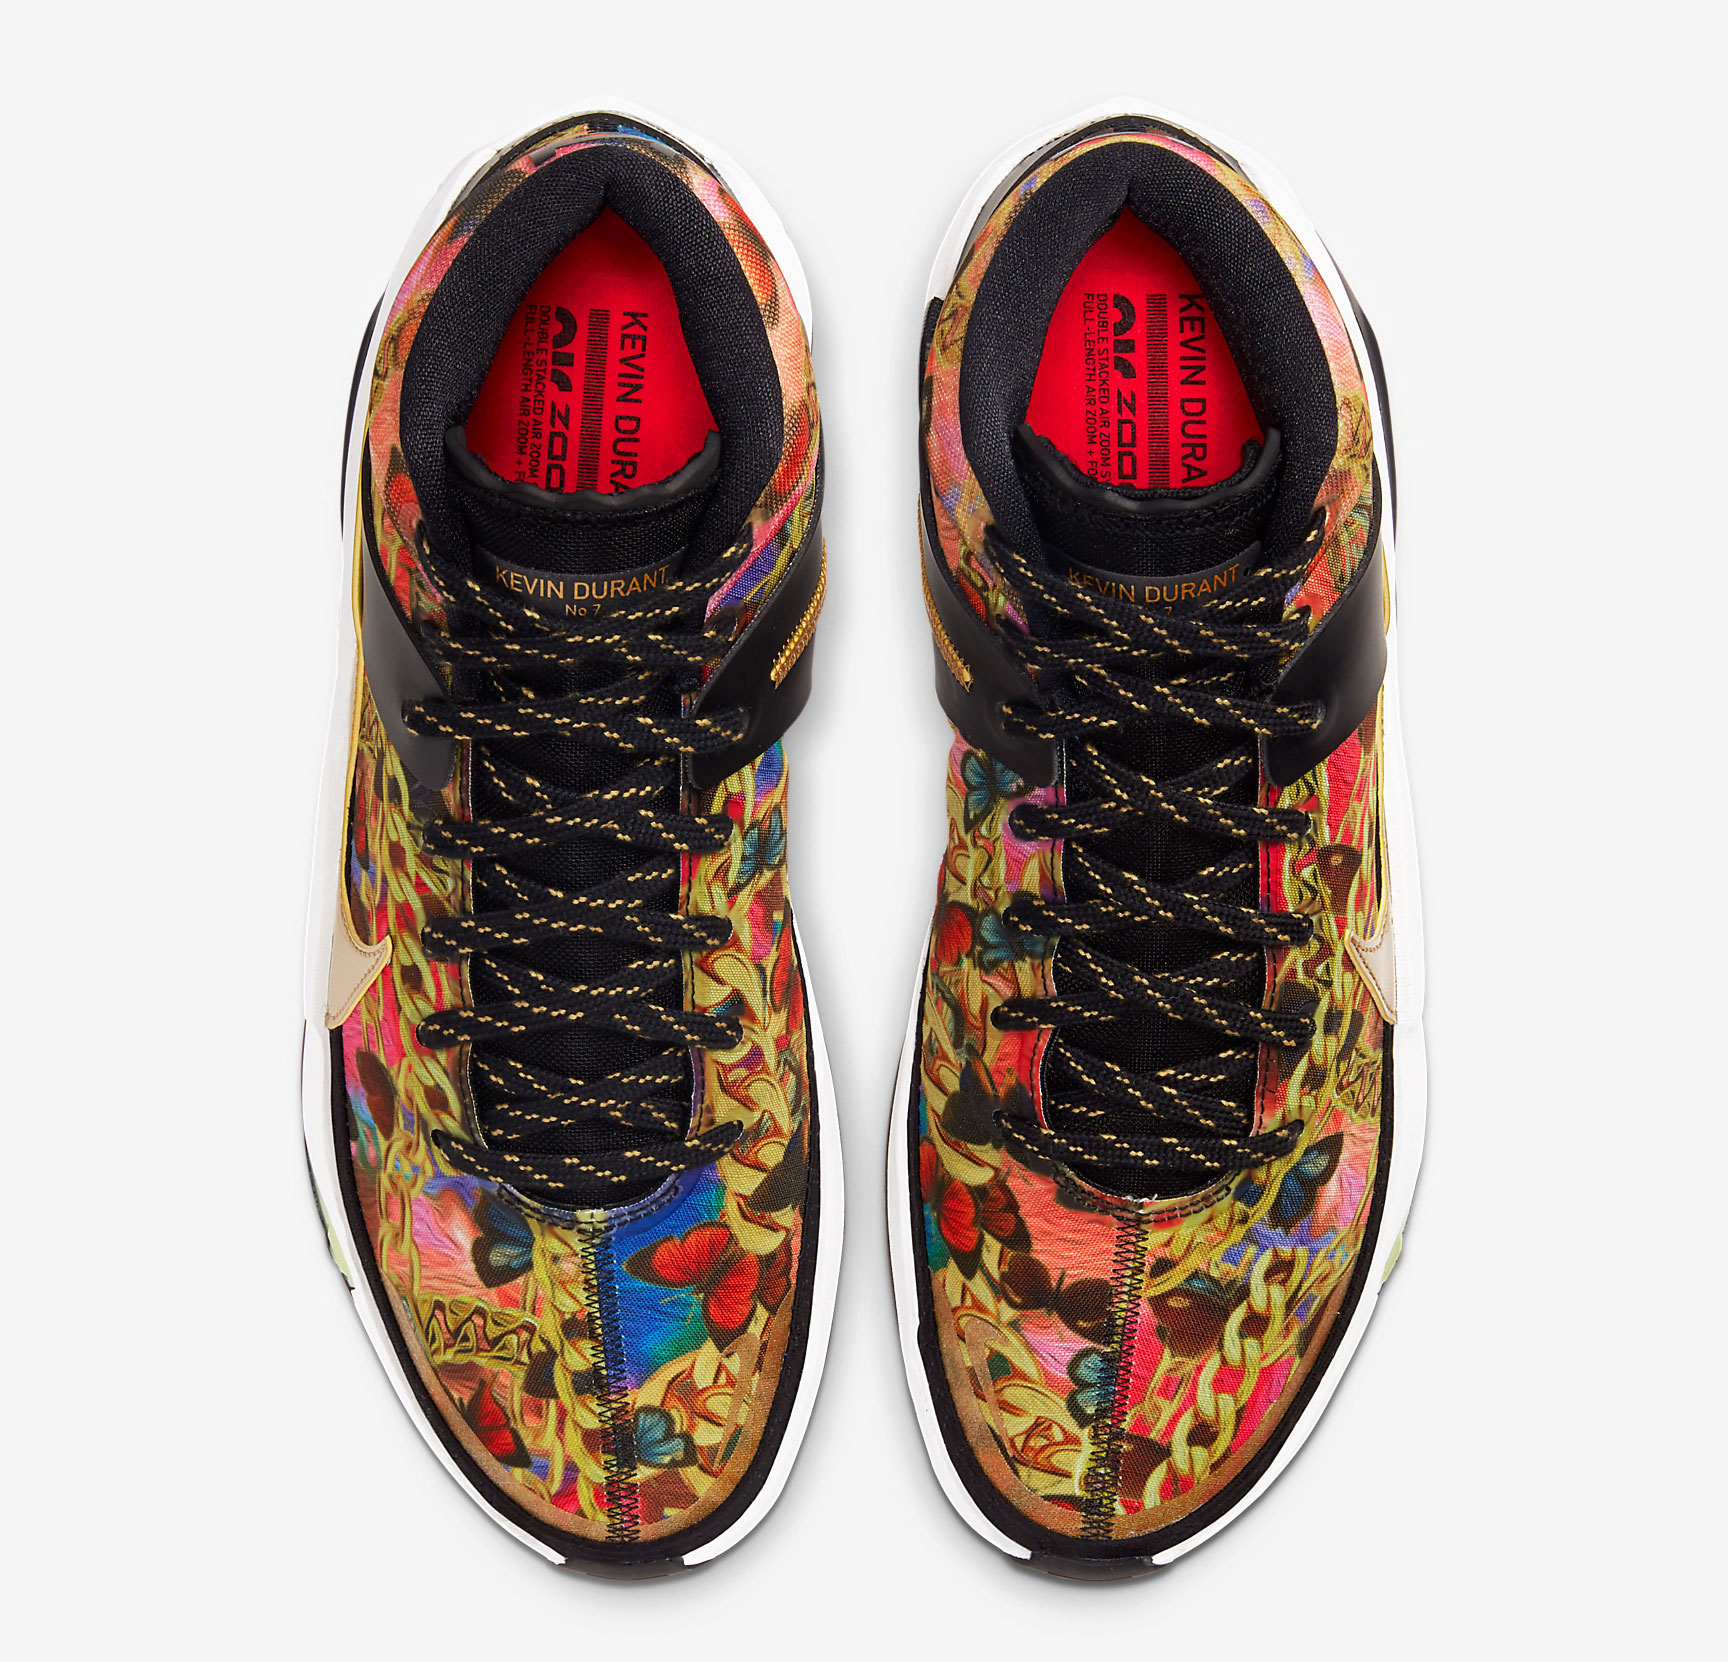 nike-kd-13-hype-butterflies-and-chains-outfits